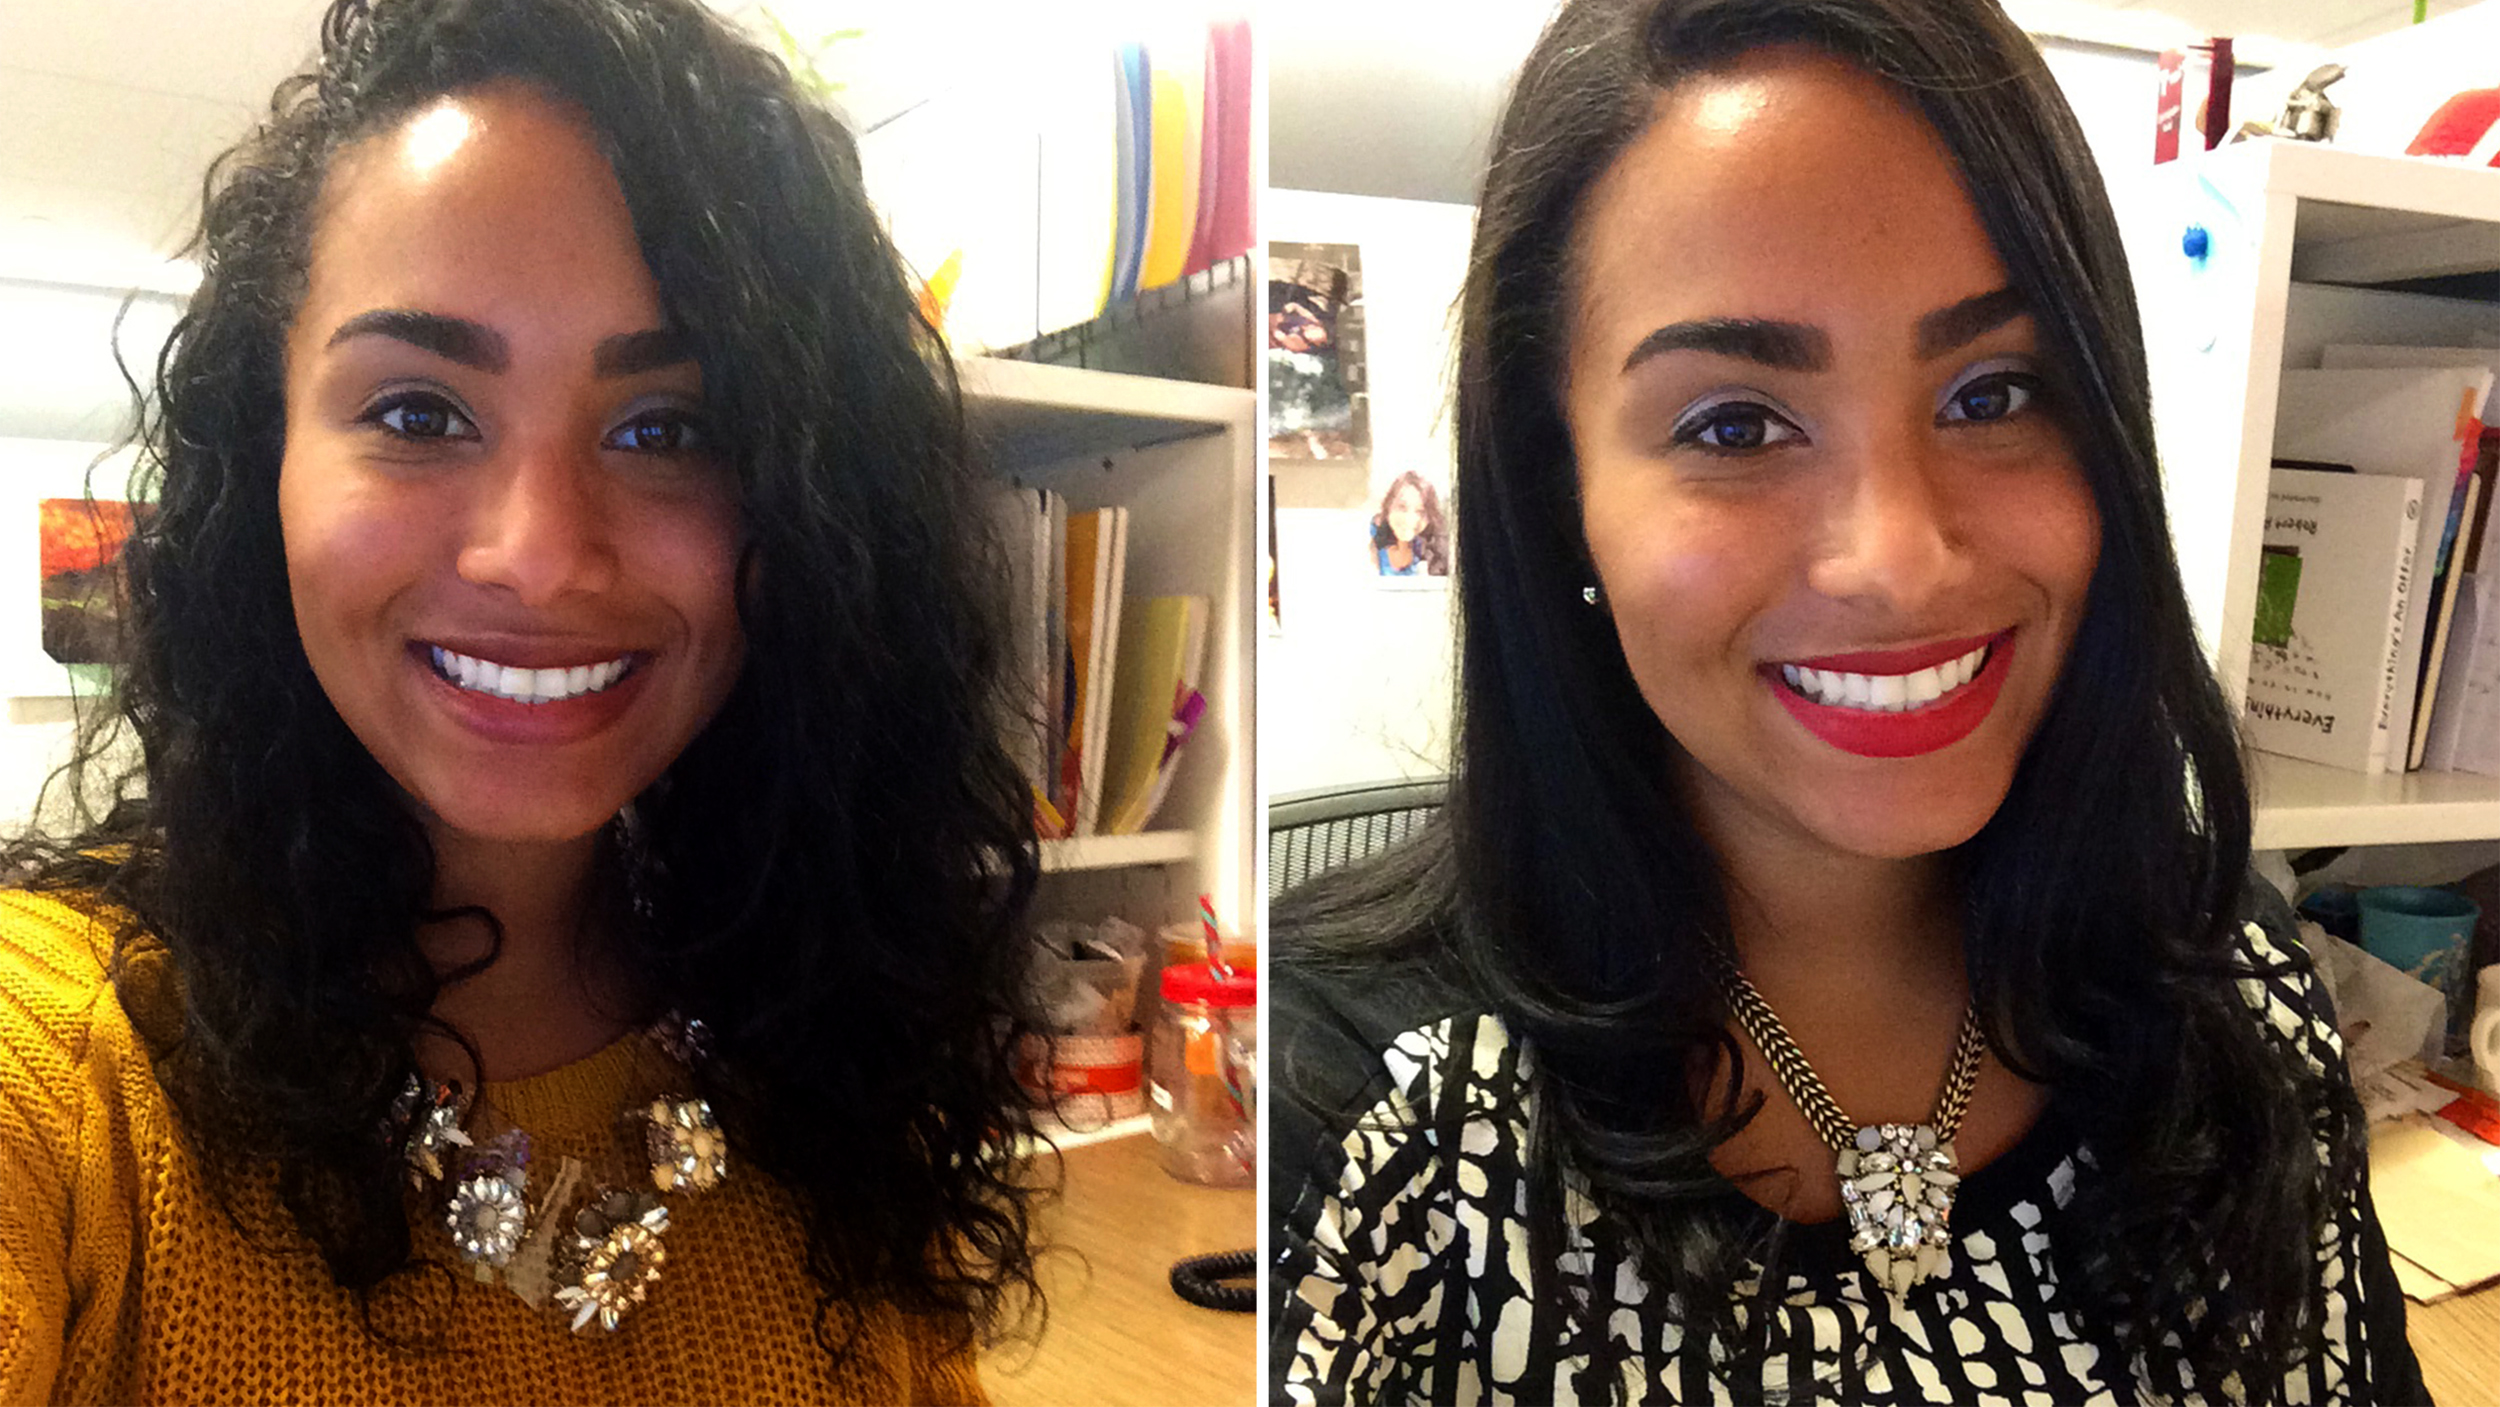 CurlPower: Women switch from curly to straight hairstyles to ...